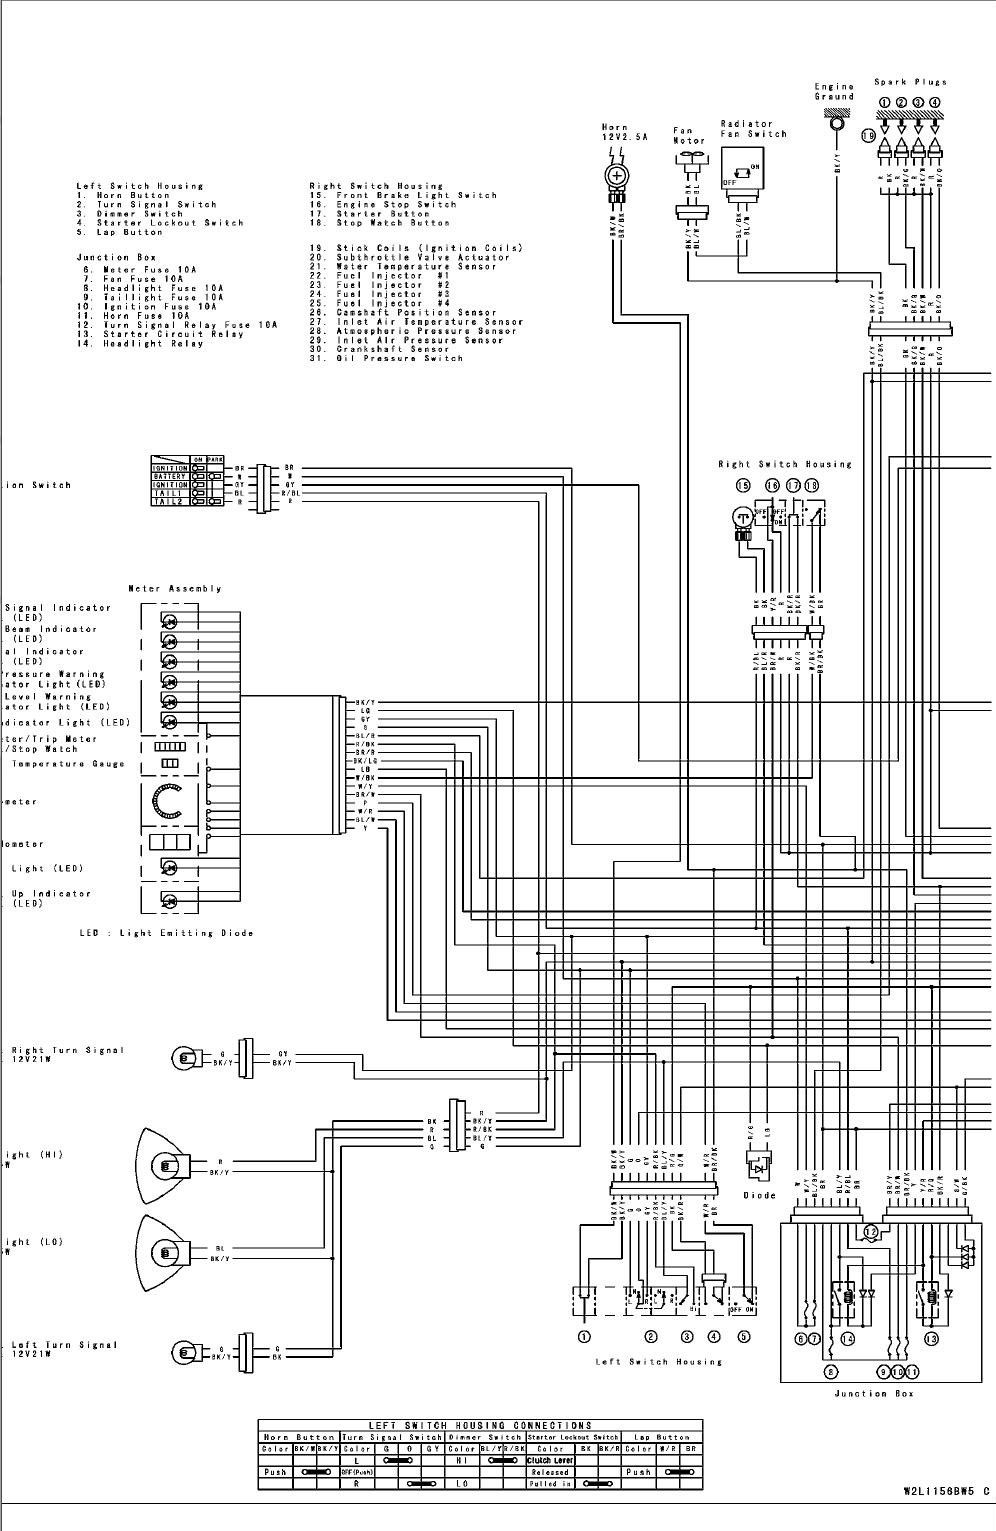 hight resolution of kawasaki 600 wiring diagram wiring diagram sample kawasaki zzr 600 wiring diagram kawasaki 600 wiring diagram